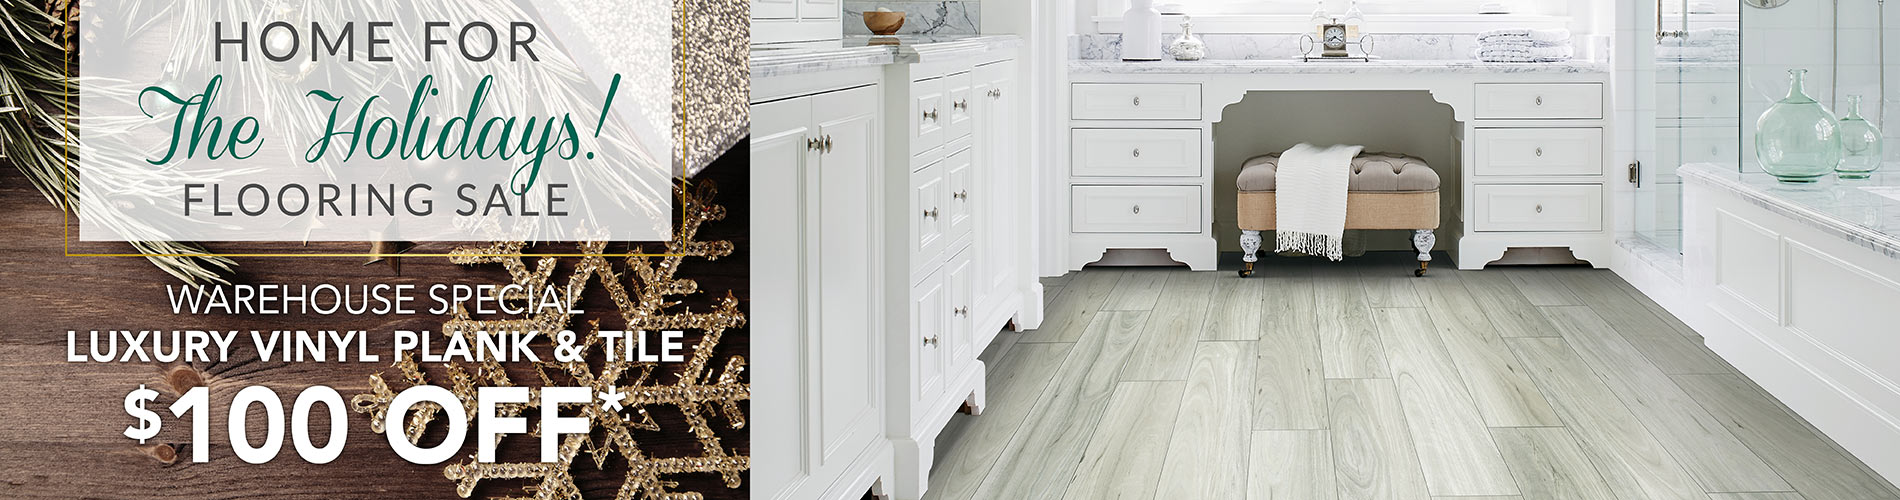 Get $100 off Luxury Vinyl Plank & Tile during our Home for the Holidays Flooring Sale at Class Carpet & Floor in Levittown, NY